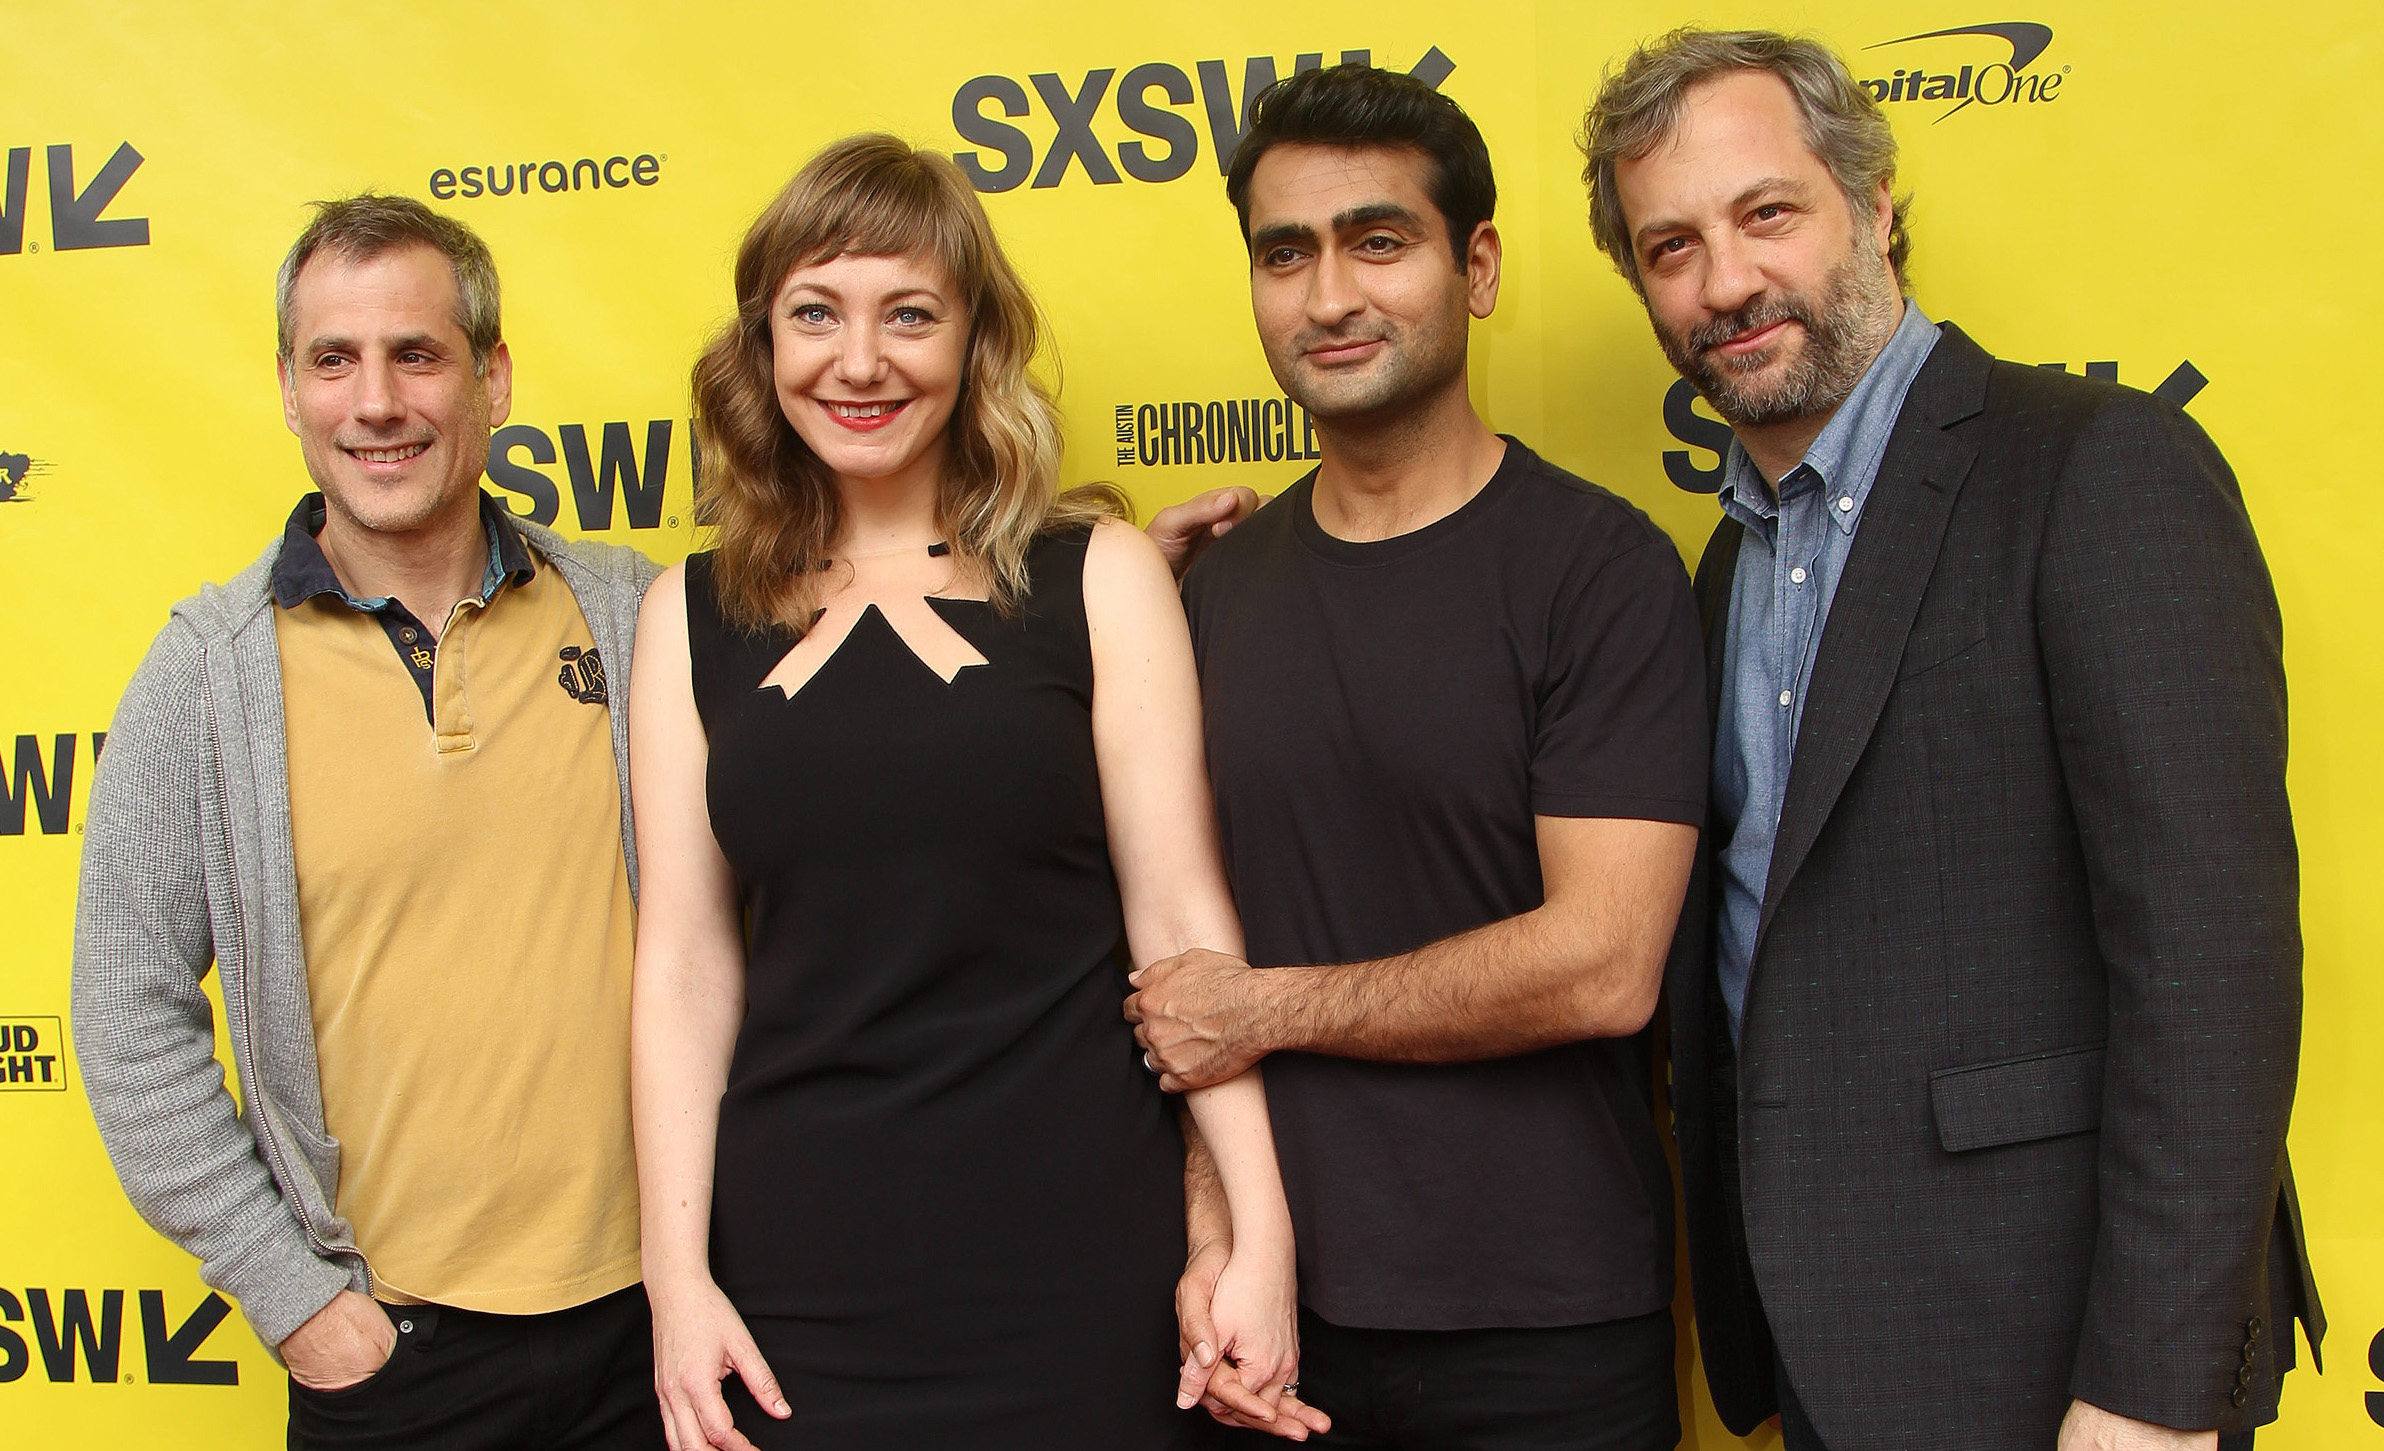 Barry Mendel, Emily V. Gordon, Kumail Nanjiani and Judd ApatowThe Big Sick film premiere, SXSW Festival, Austin, USA - 16 Mar 2017